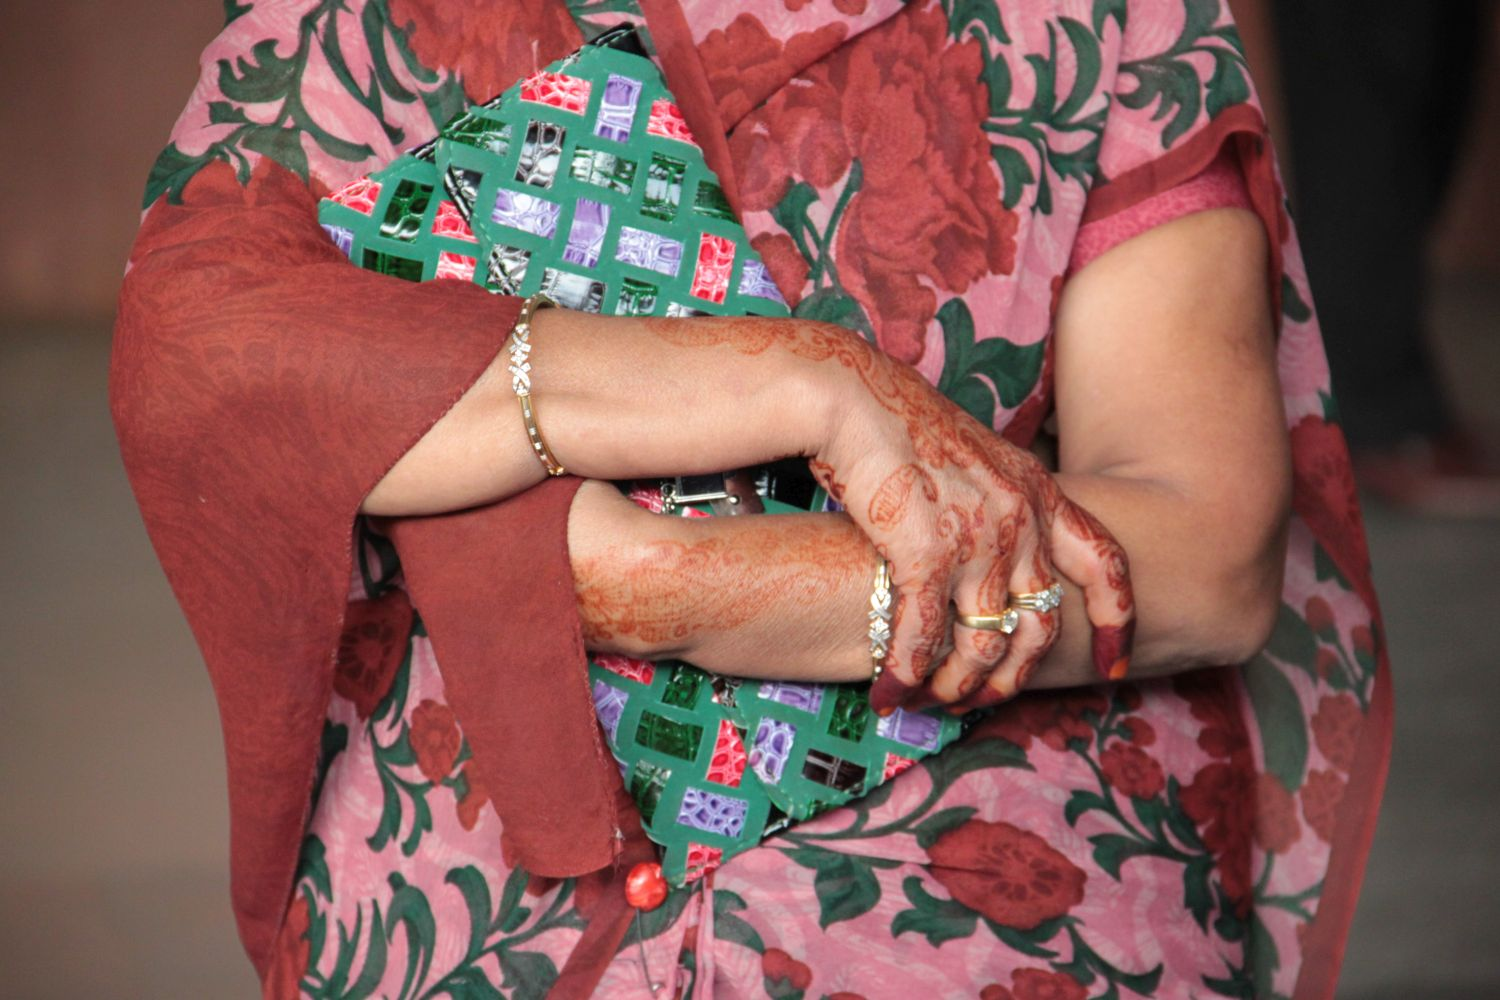 Jaipur | Rajasthan | Pink city | Indian woman with tattoos | Photo sandrine cohen